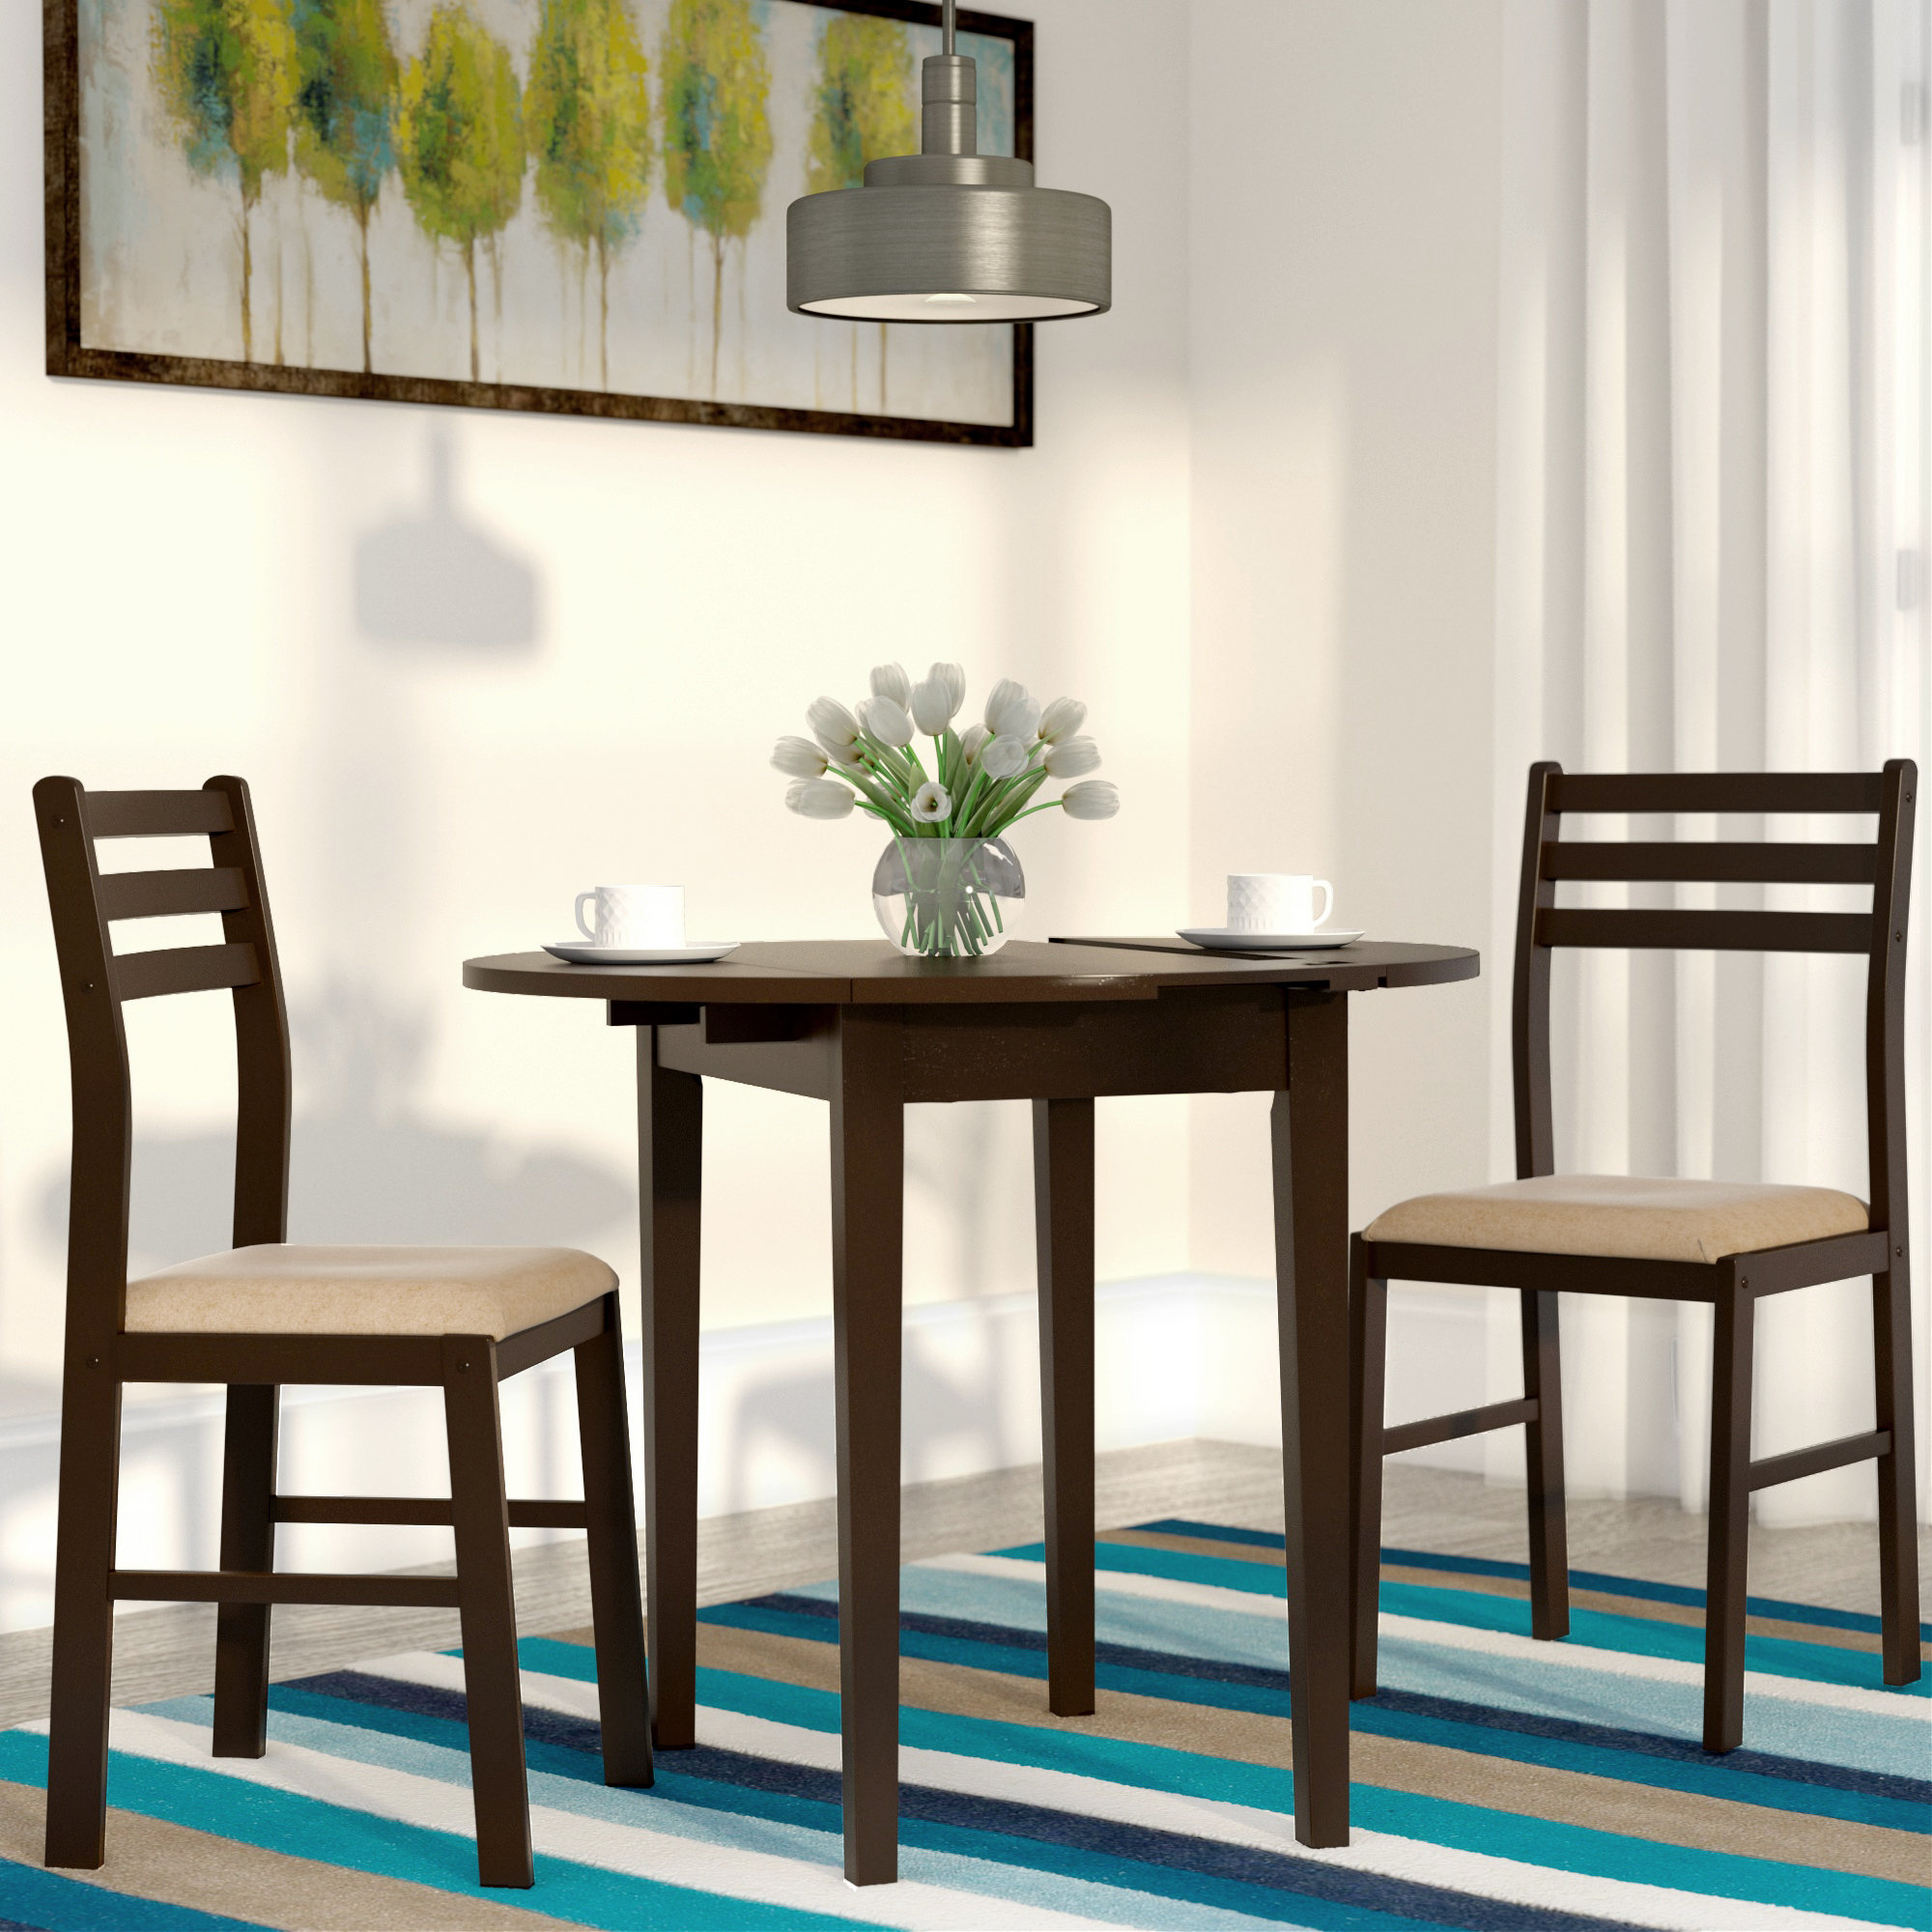 Lynbrook 3 Piece Dining Set In 2017 Lonon 3 Piece Dining Sets (Image 14 of 20)